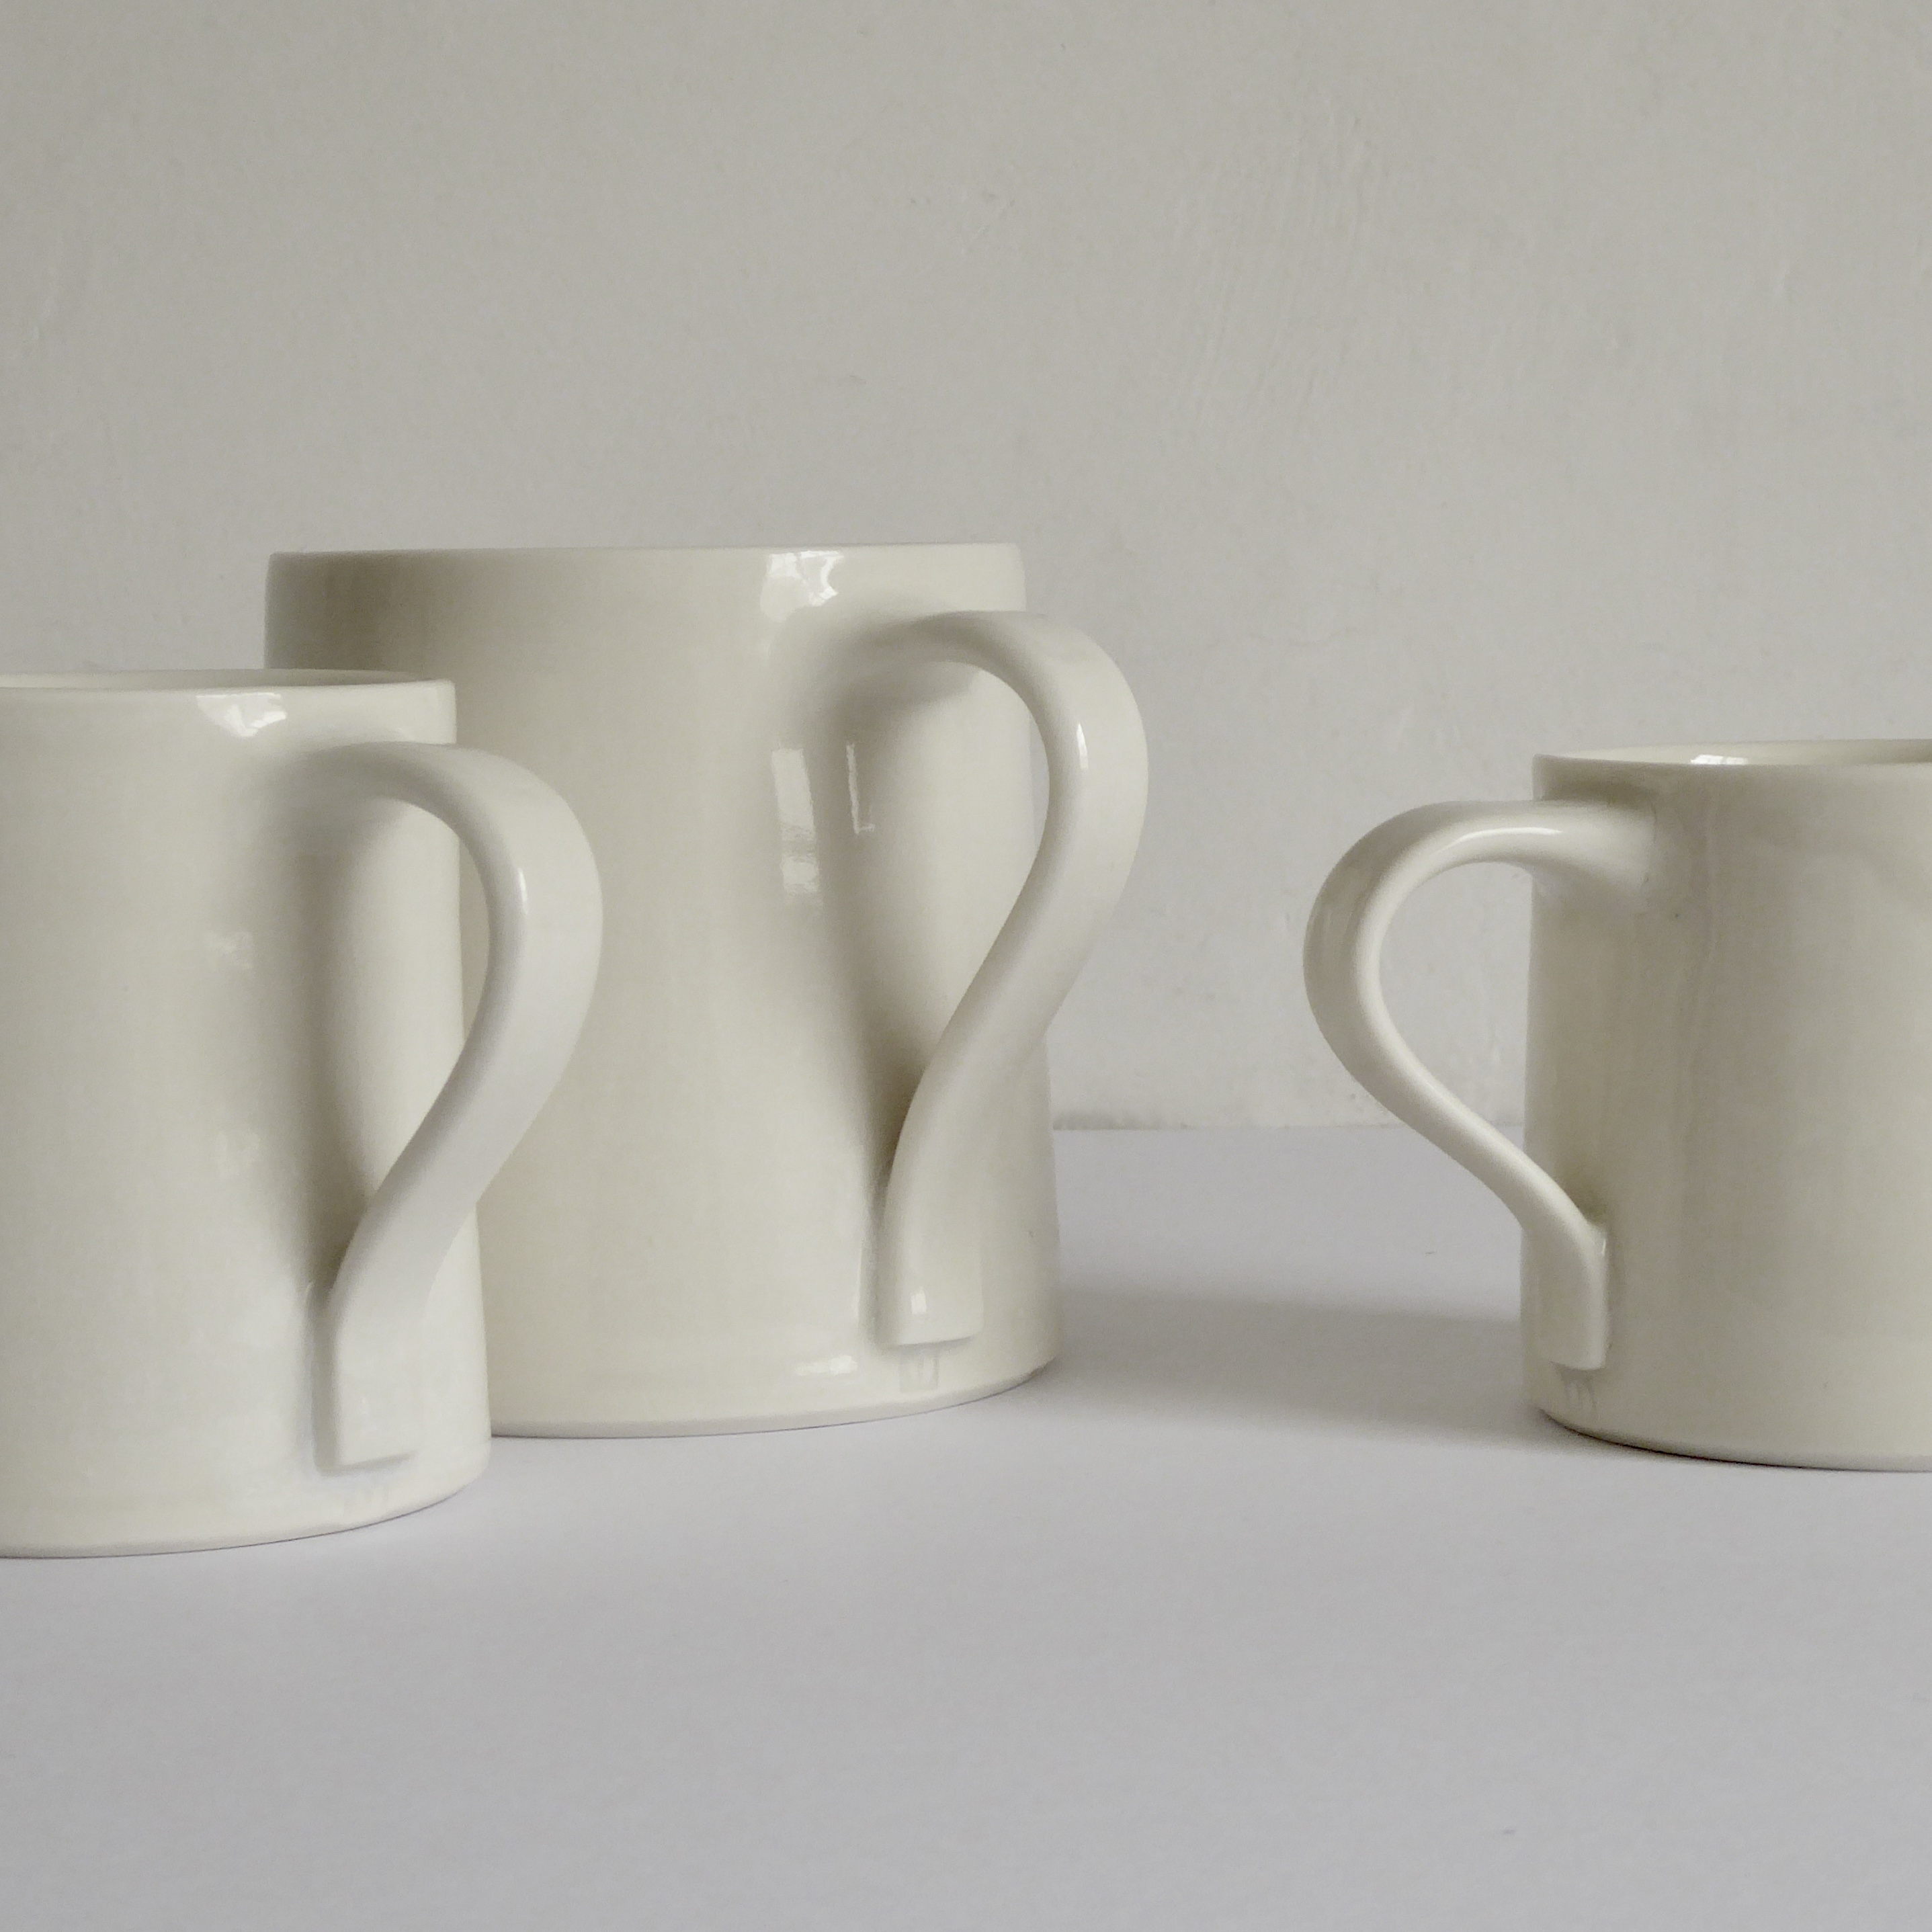 Afternoon, Tall and Square mugs